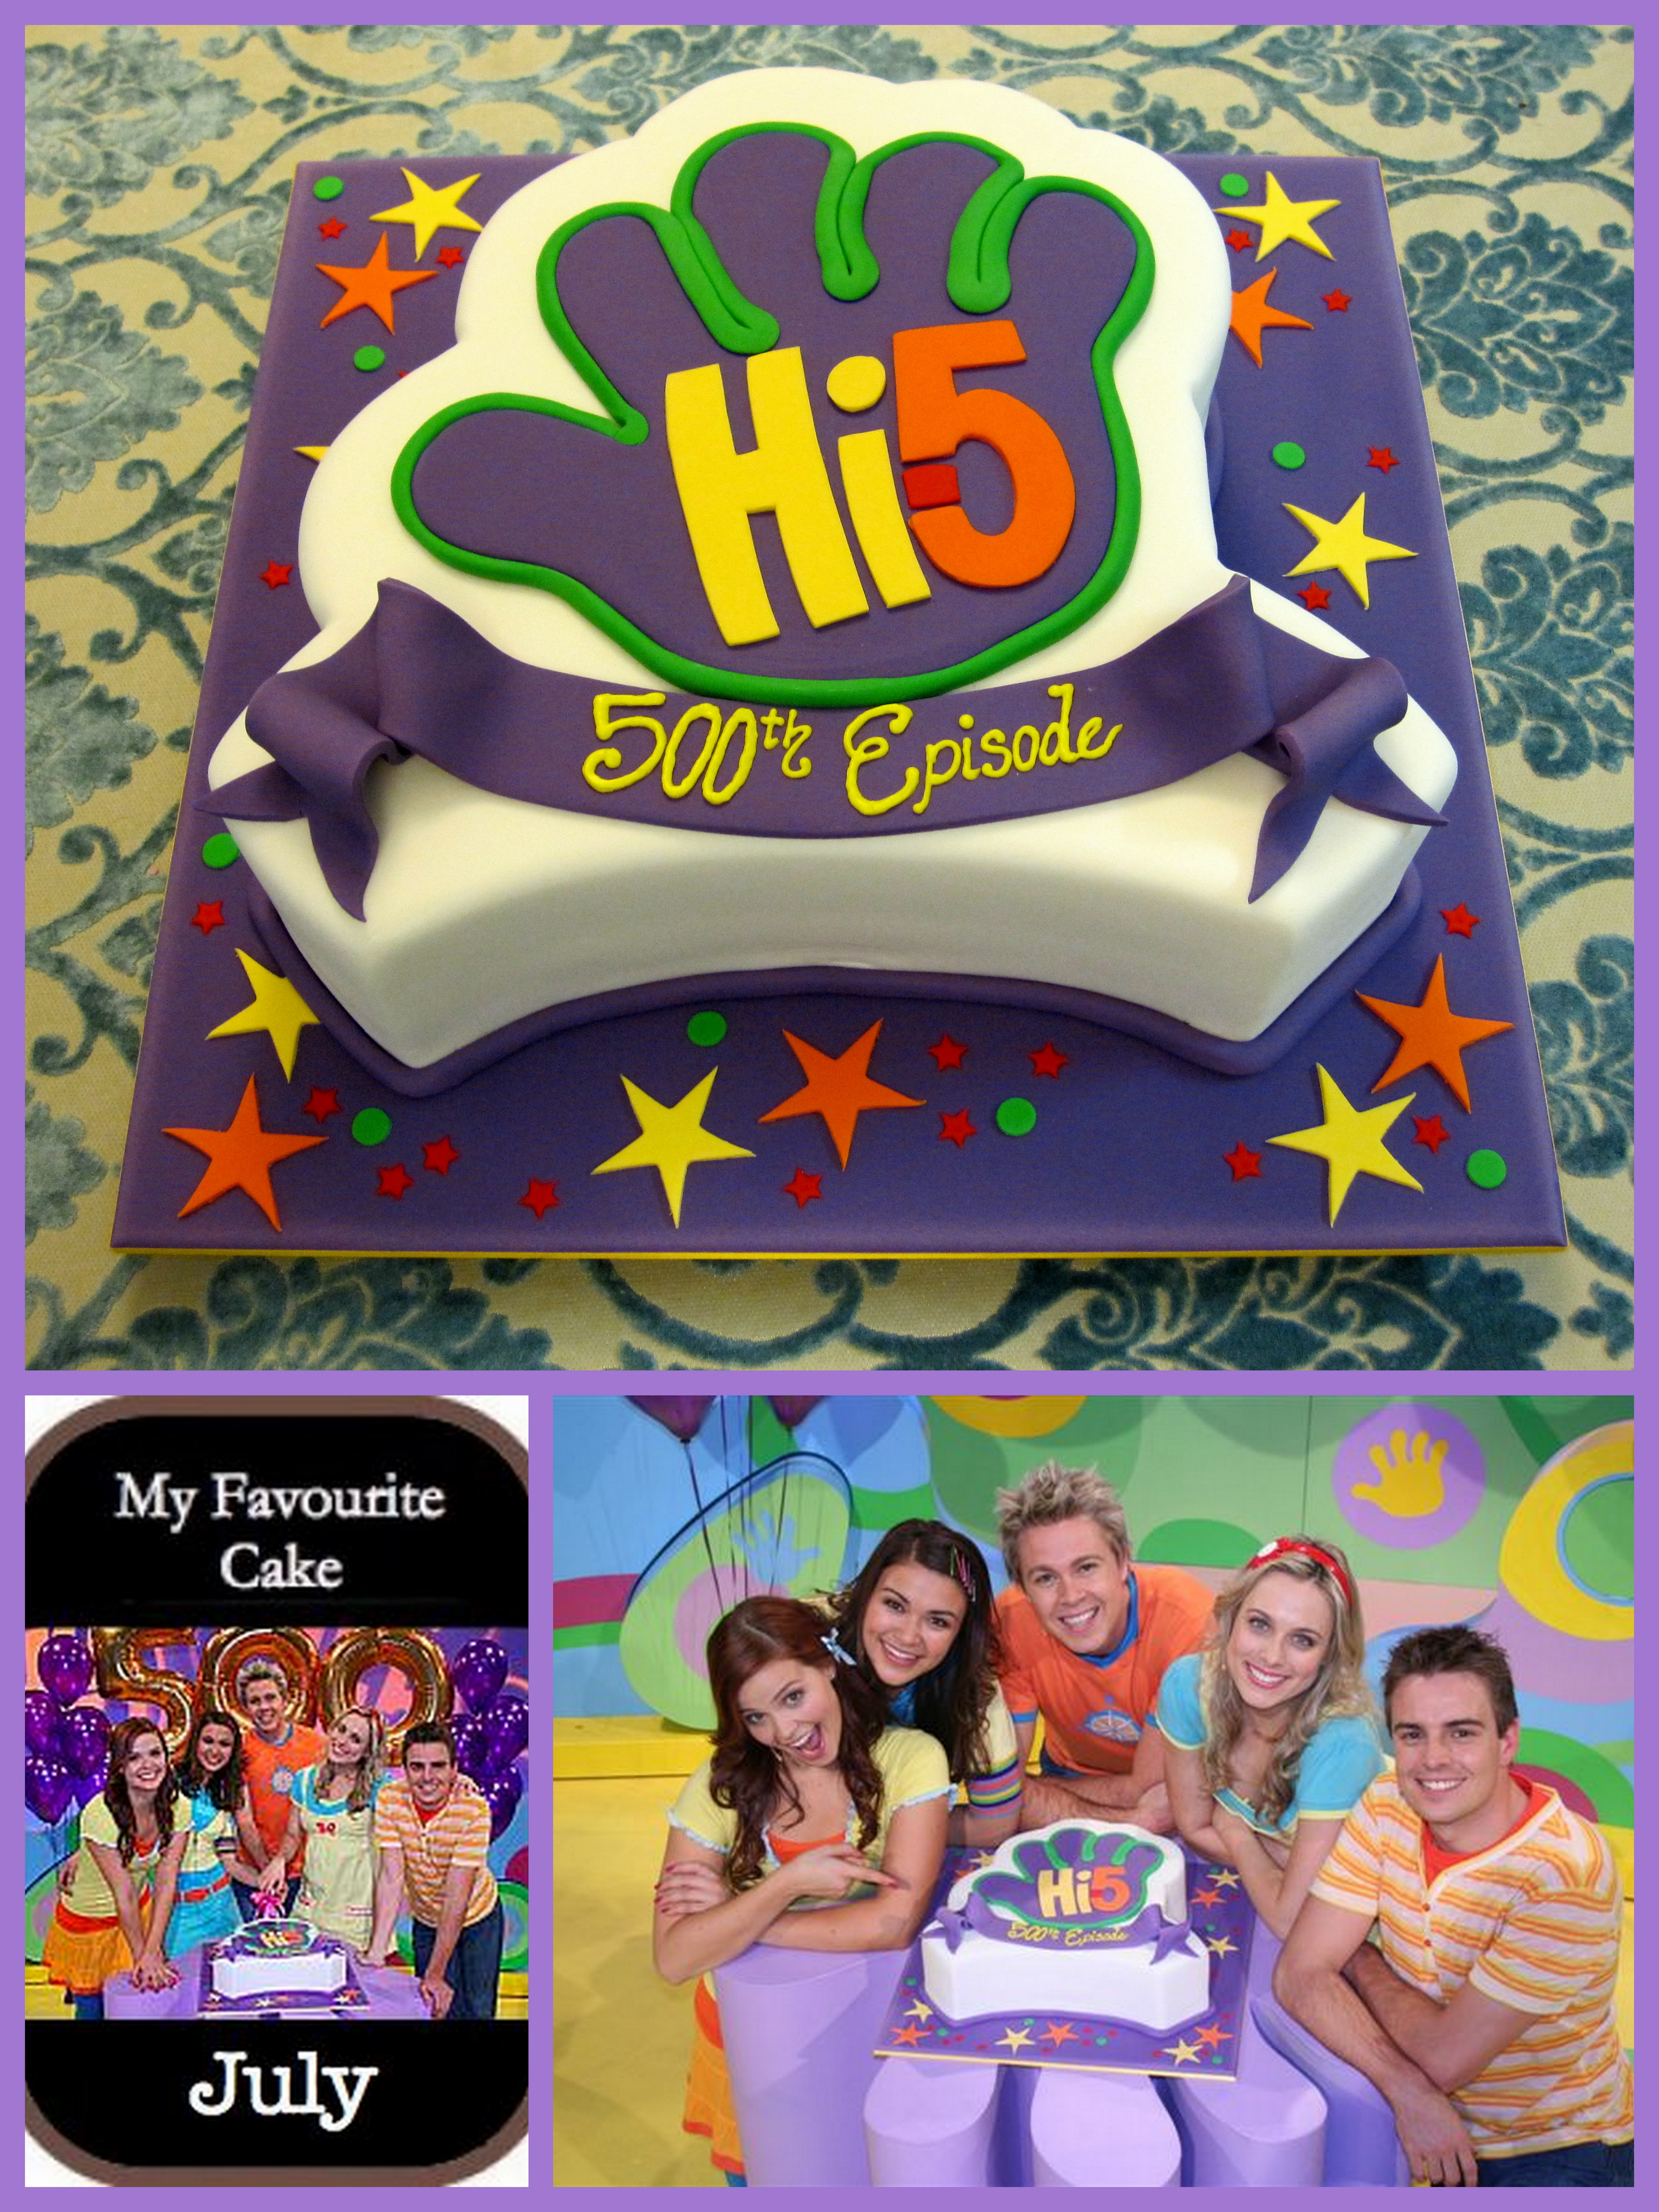 Hi 5 Cake Idea 500th Episode Celebration Inspired By Michelle Designs